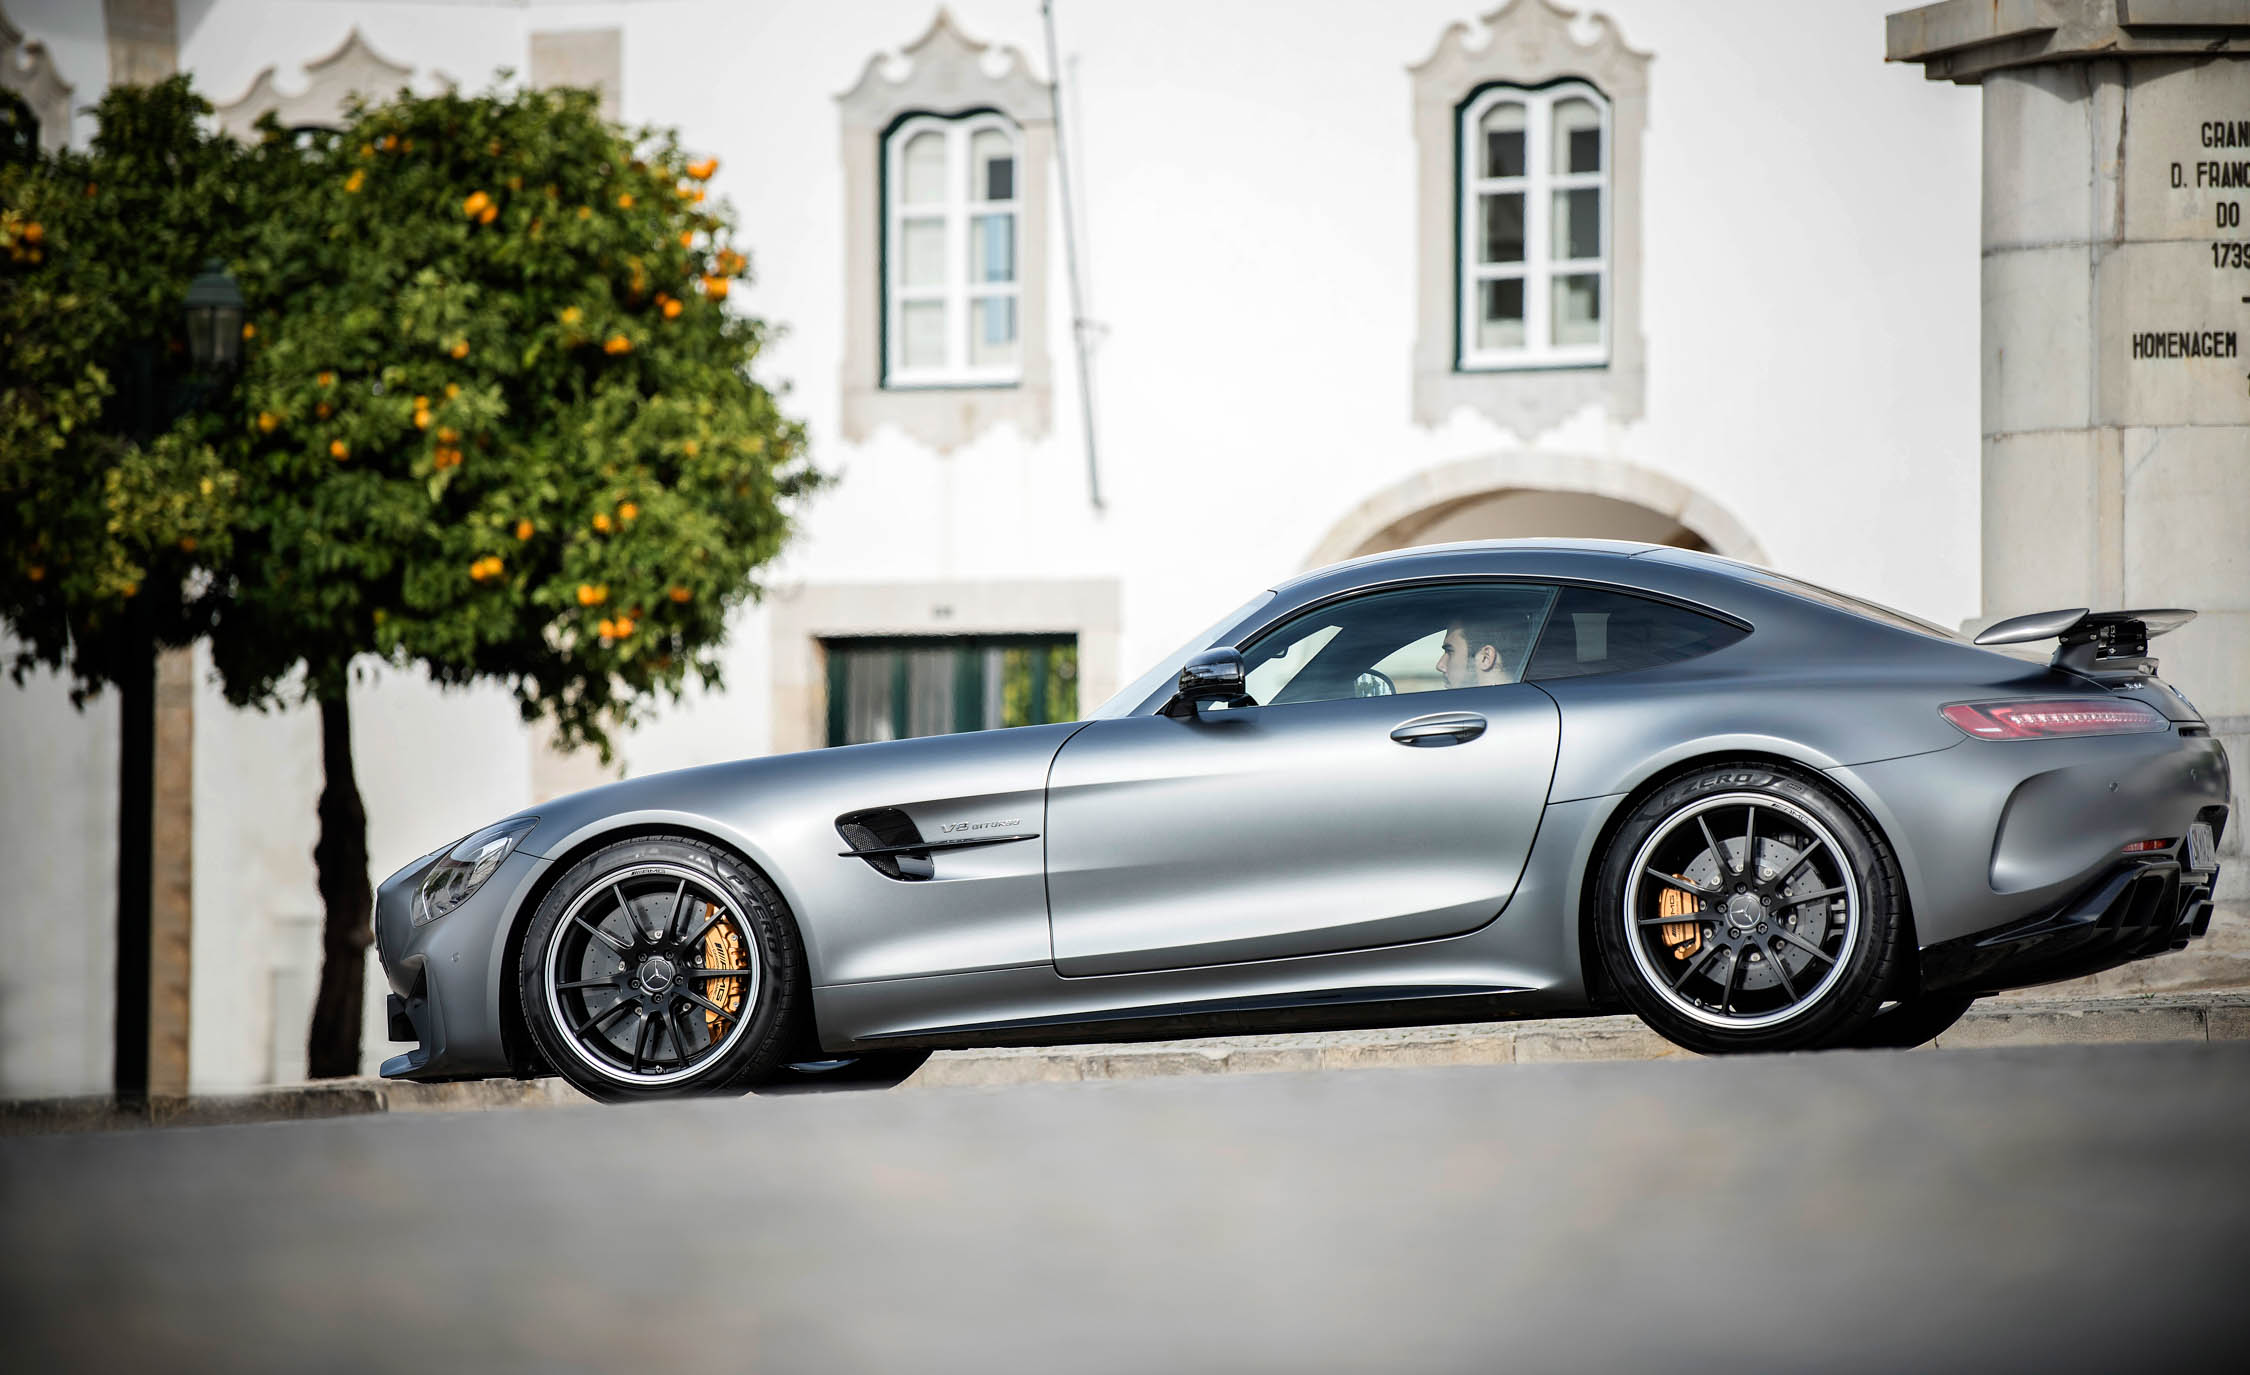 2018 Mercedes AMG GT R Exterior Grey Metallic Side View (Photo 11 of 36)